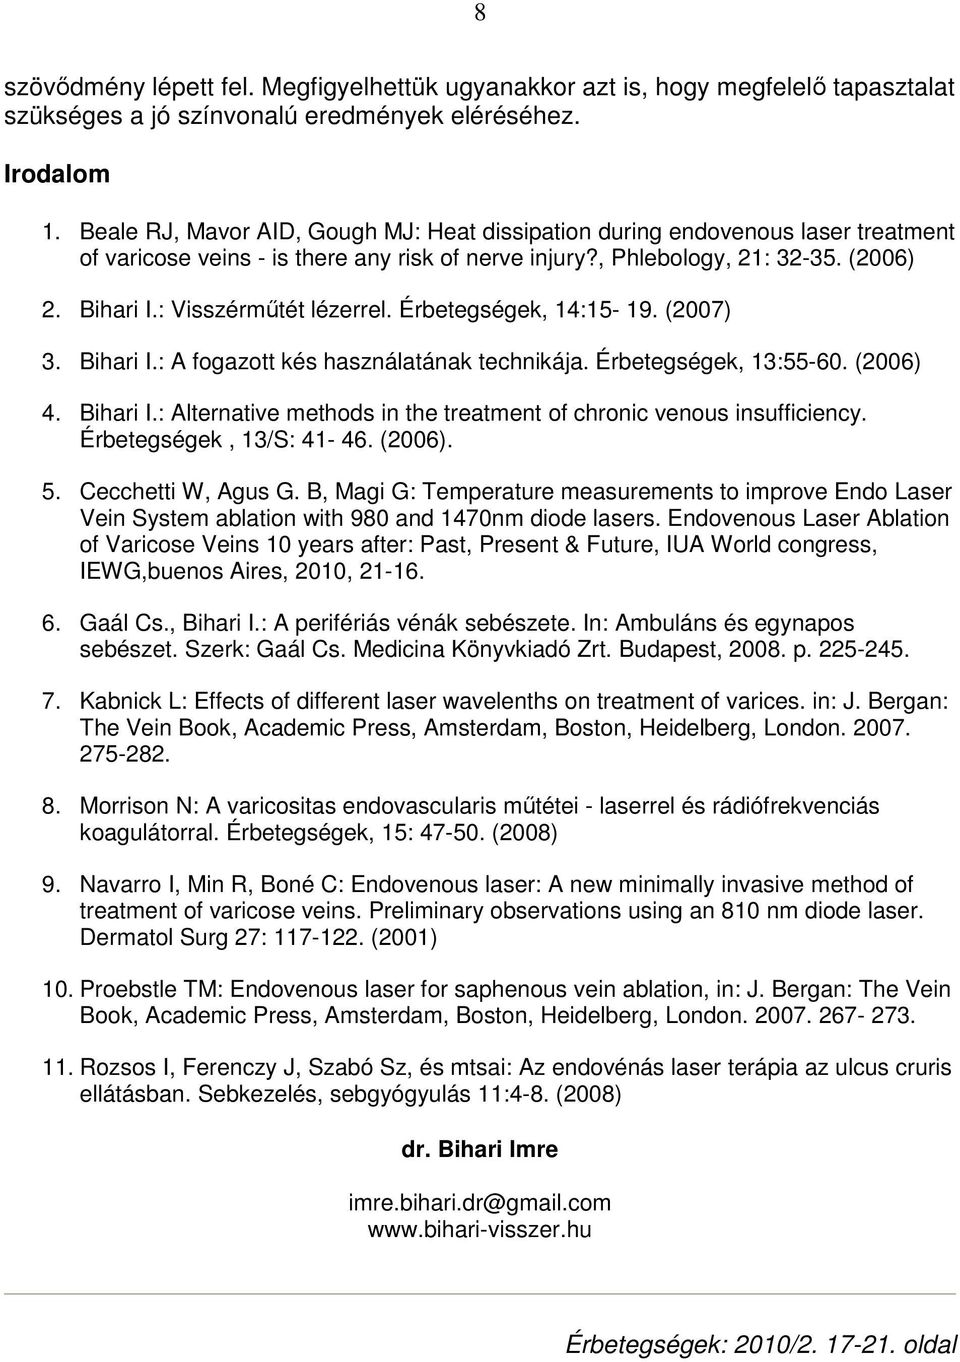 : Visszérmőtét lézerrel. Érbetegségek, 14:15-19. (2007) 3. Bihari I.: A fogazott kés használatának technikája. Érbetegségek, 13:55-60. (2006) 4. Bihari I.: Alternative methods in the treatment of chronic venous insufficiency.